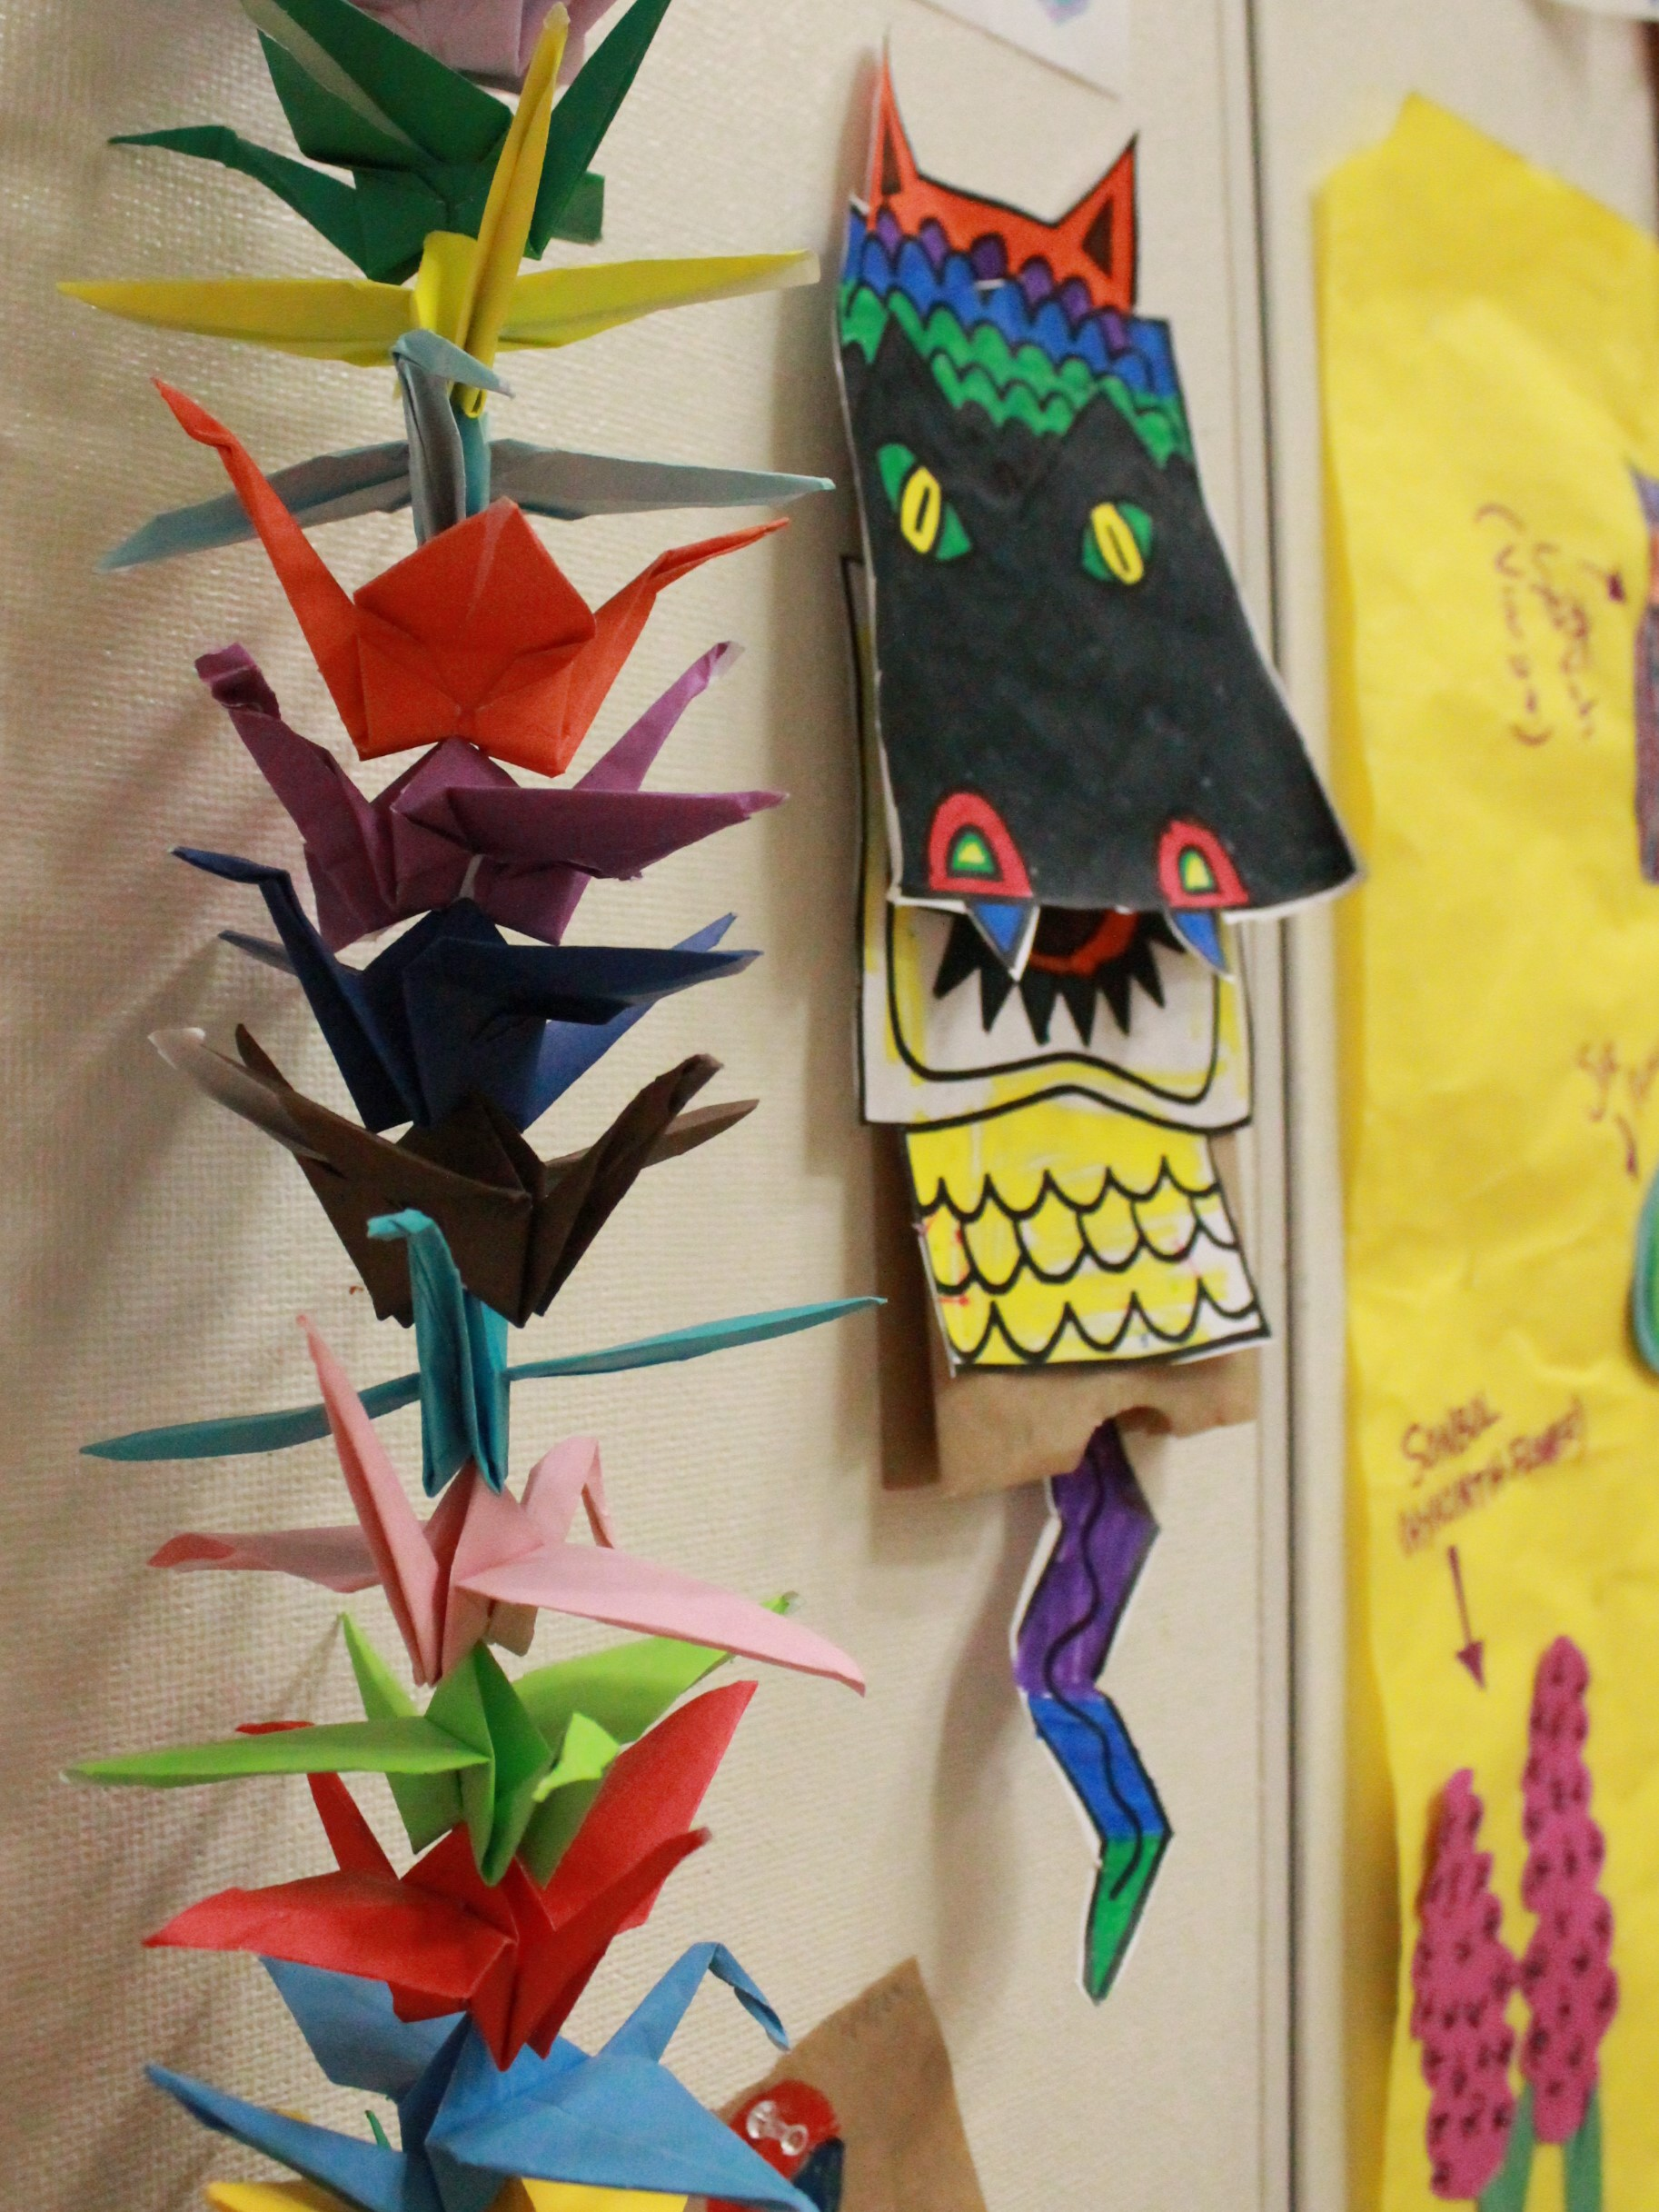 Colorful paper crafts hanging on a wall at an Asian Heritage festival